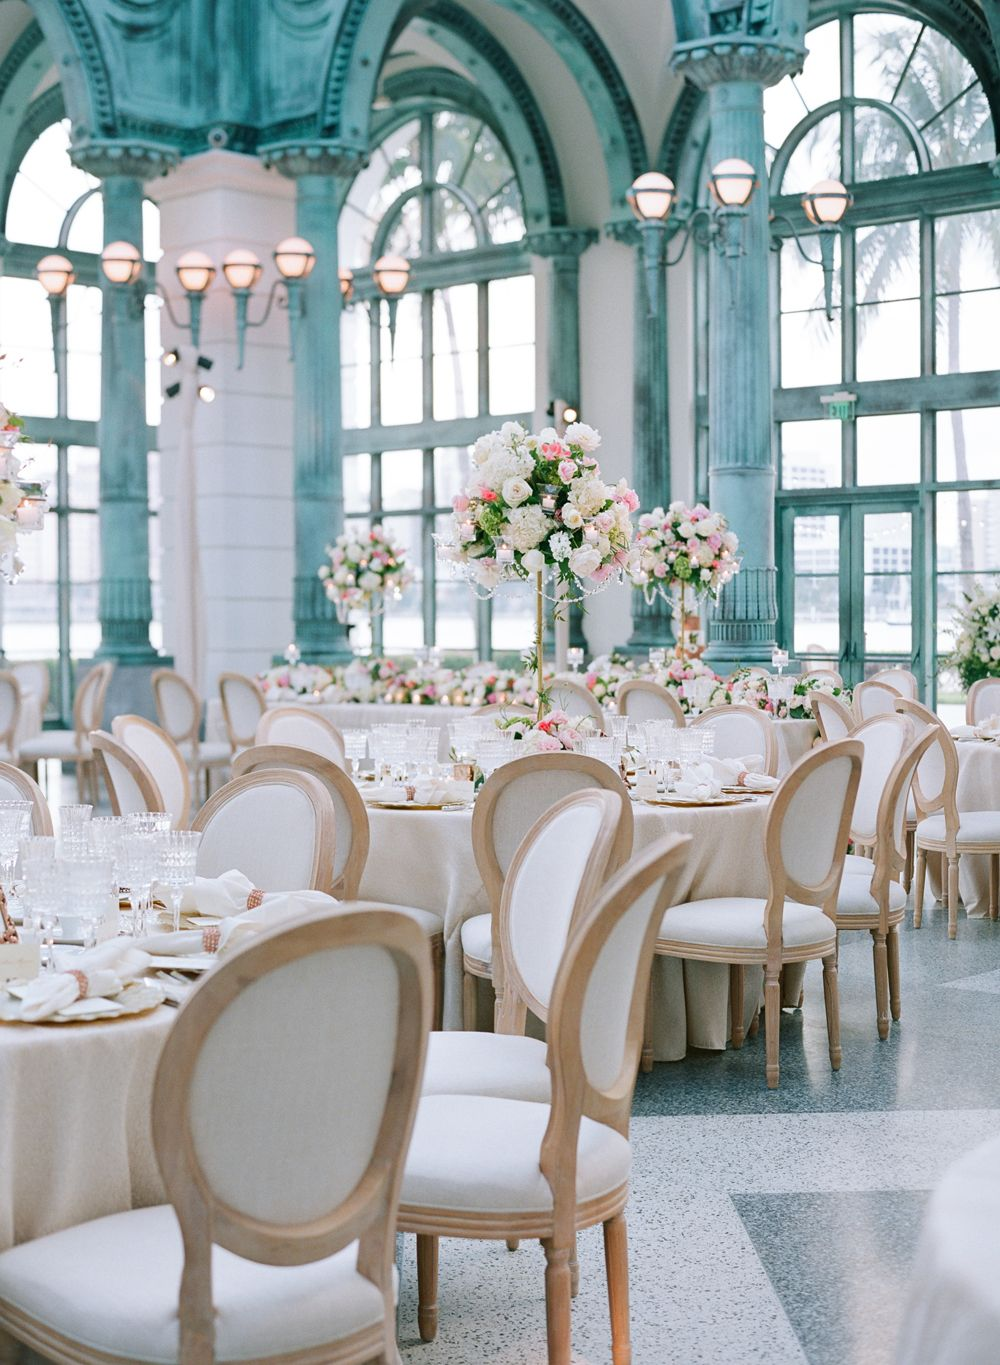 Lavish Palm Beach Wedding With a Touch of Emerald Green ...